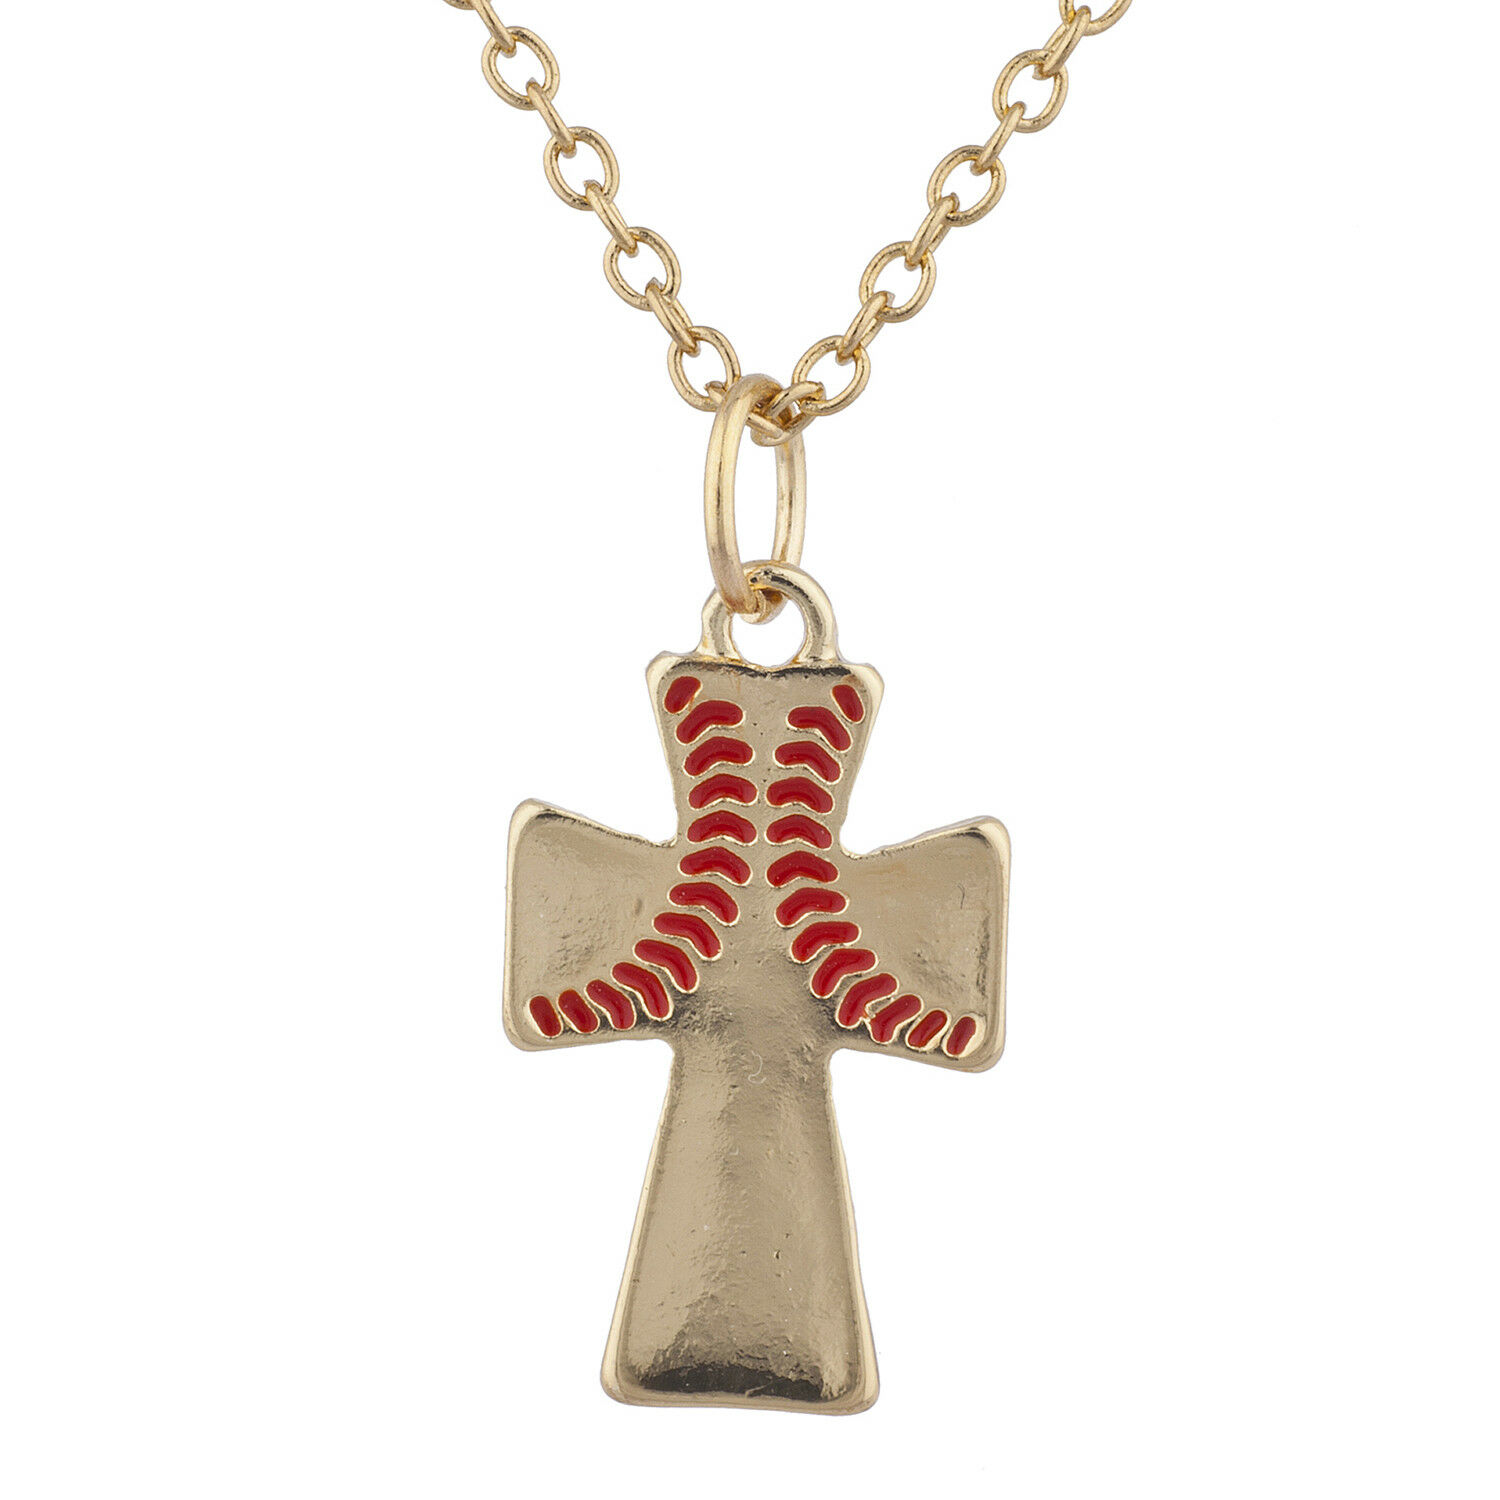 en baseball gift son fullxfull zoom pendant for listing necklace il play ballplayer him